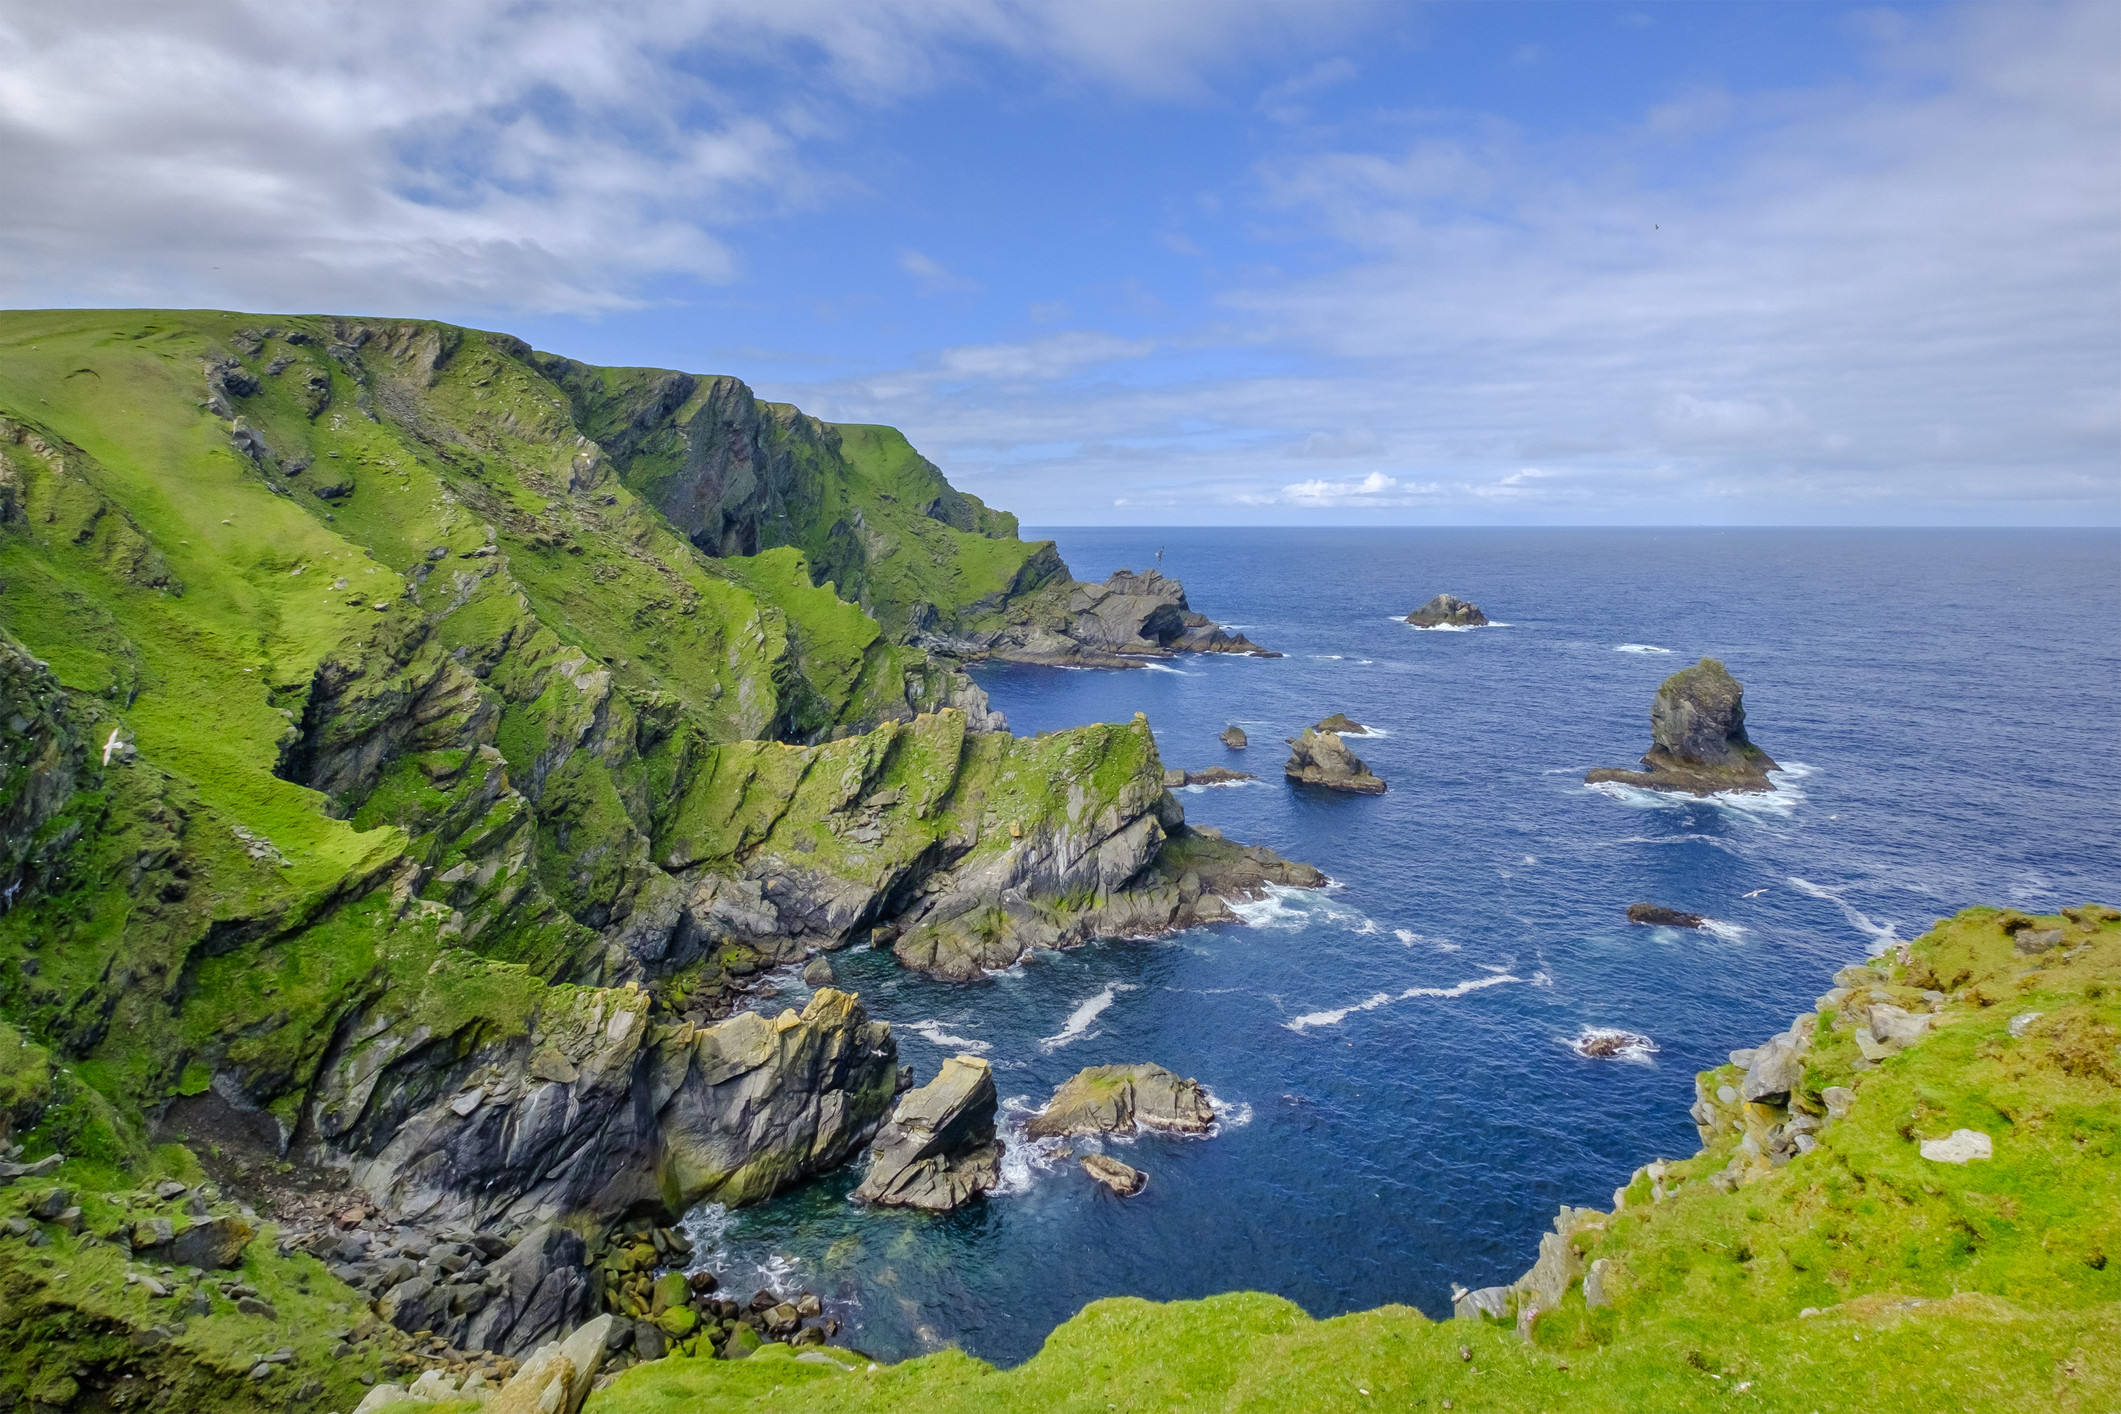 Vacationing in Scotland? Consider the remote Shetland and Orkney Islands